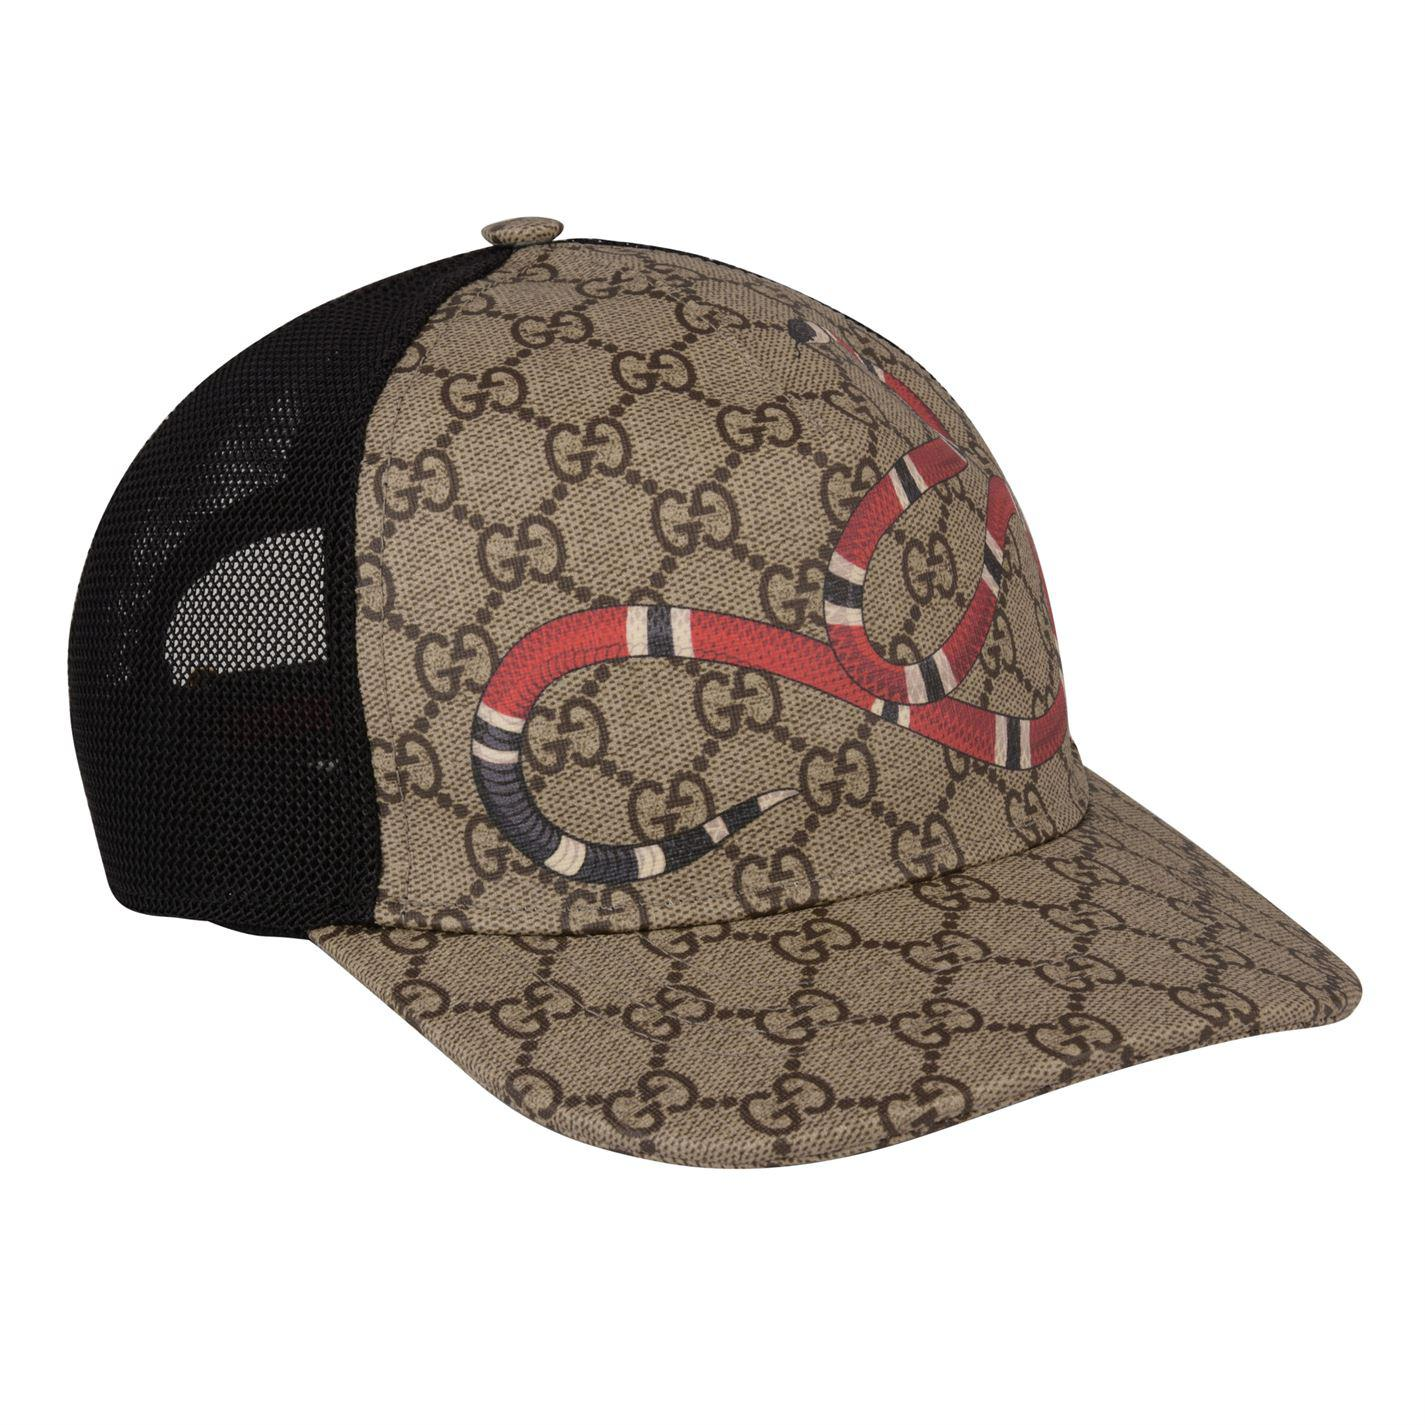 63b60f8147c2 Lyst - Gucci Snake Supreme Cap in Brown for Men